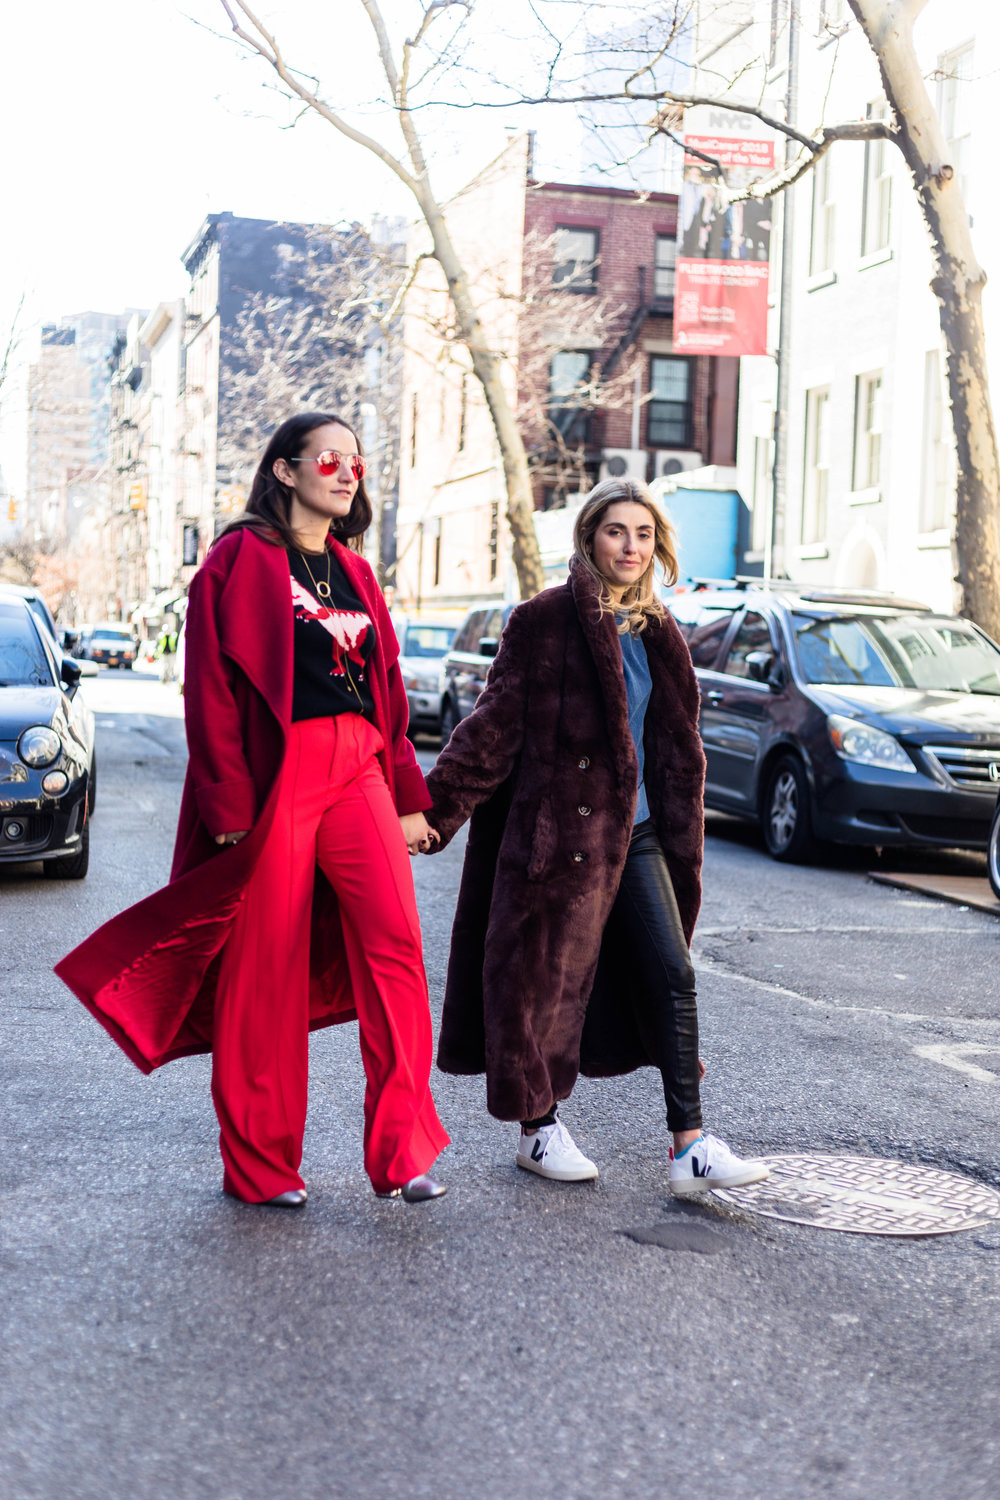 YIN 2MY YANG SOPHIE & CHARLOTTE BICKLEY BLOGGER SISTERS NYC LONG JACKET POST JANUARY 2018